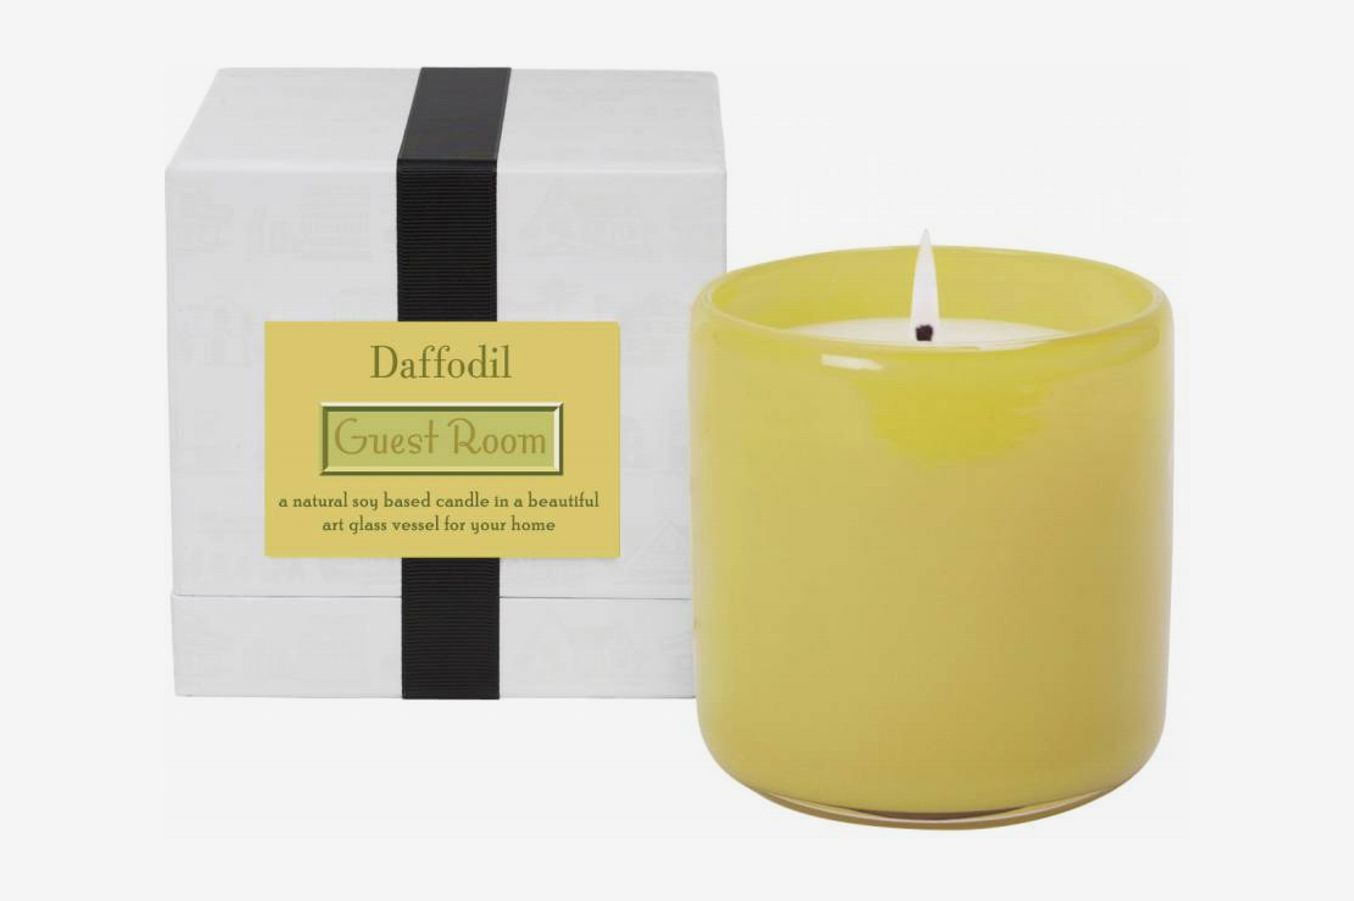 Lafco Guest Room Daffodil Glass Candle